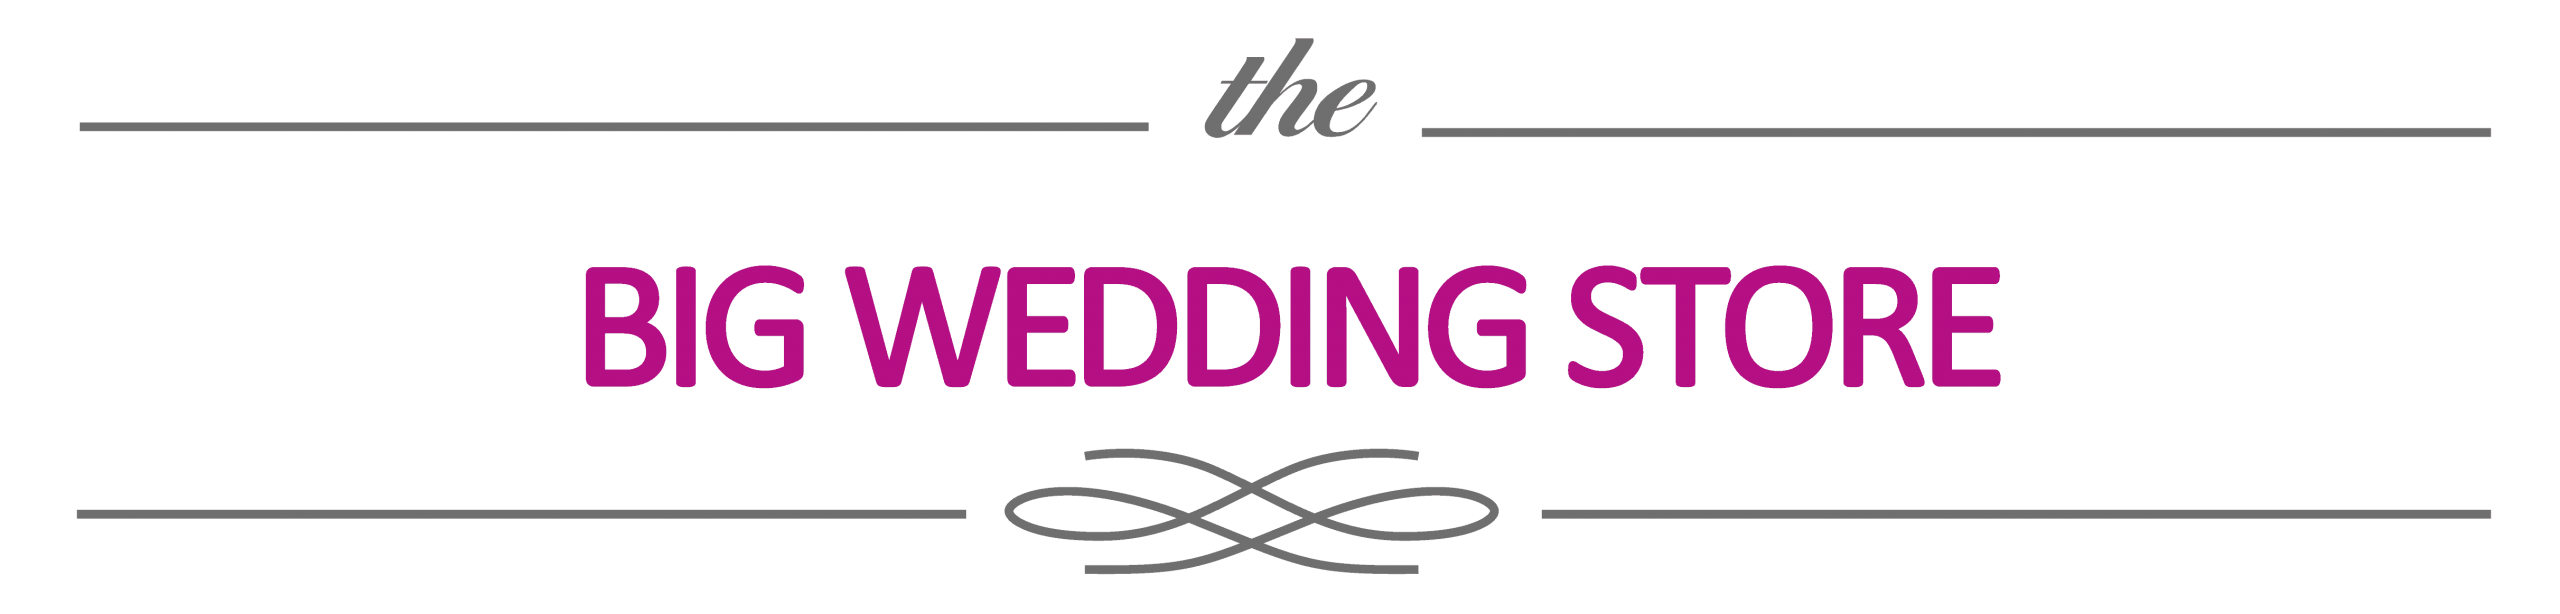 The Big Wedding Store